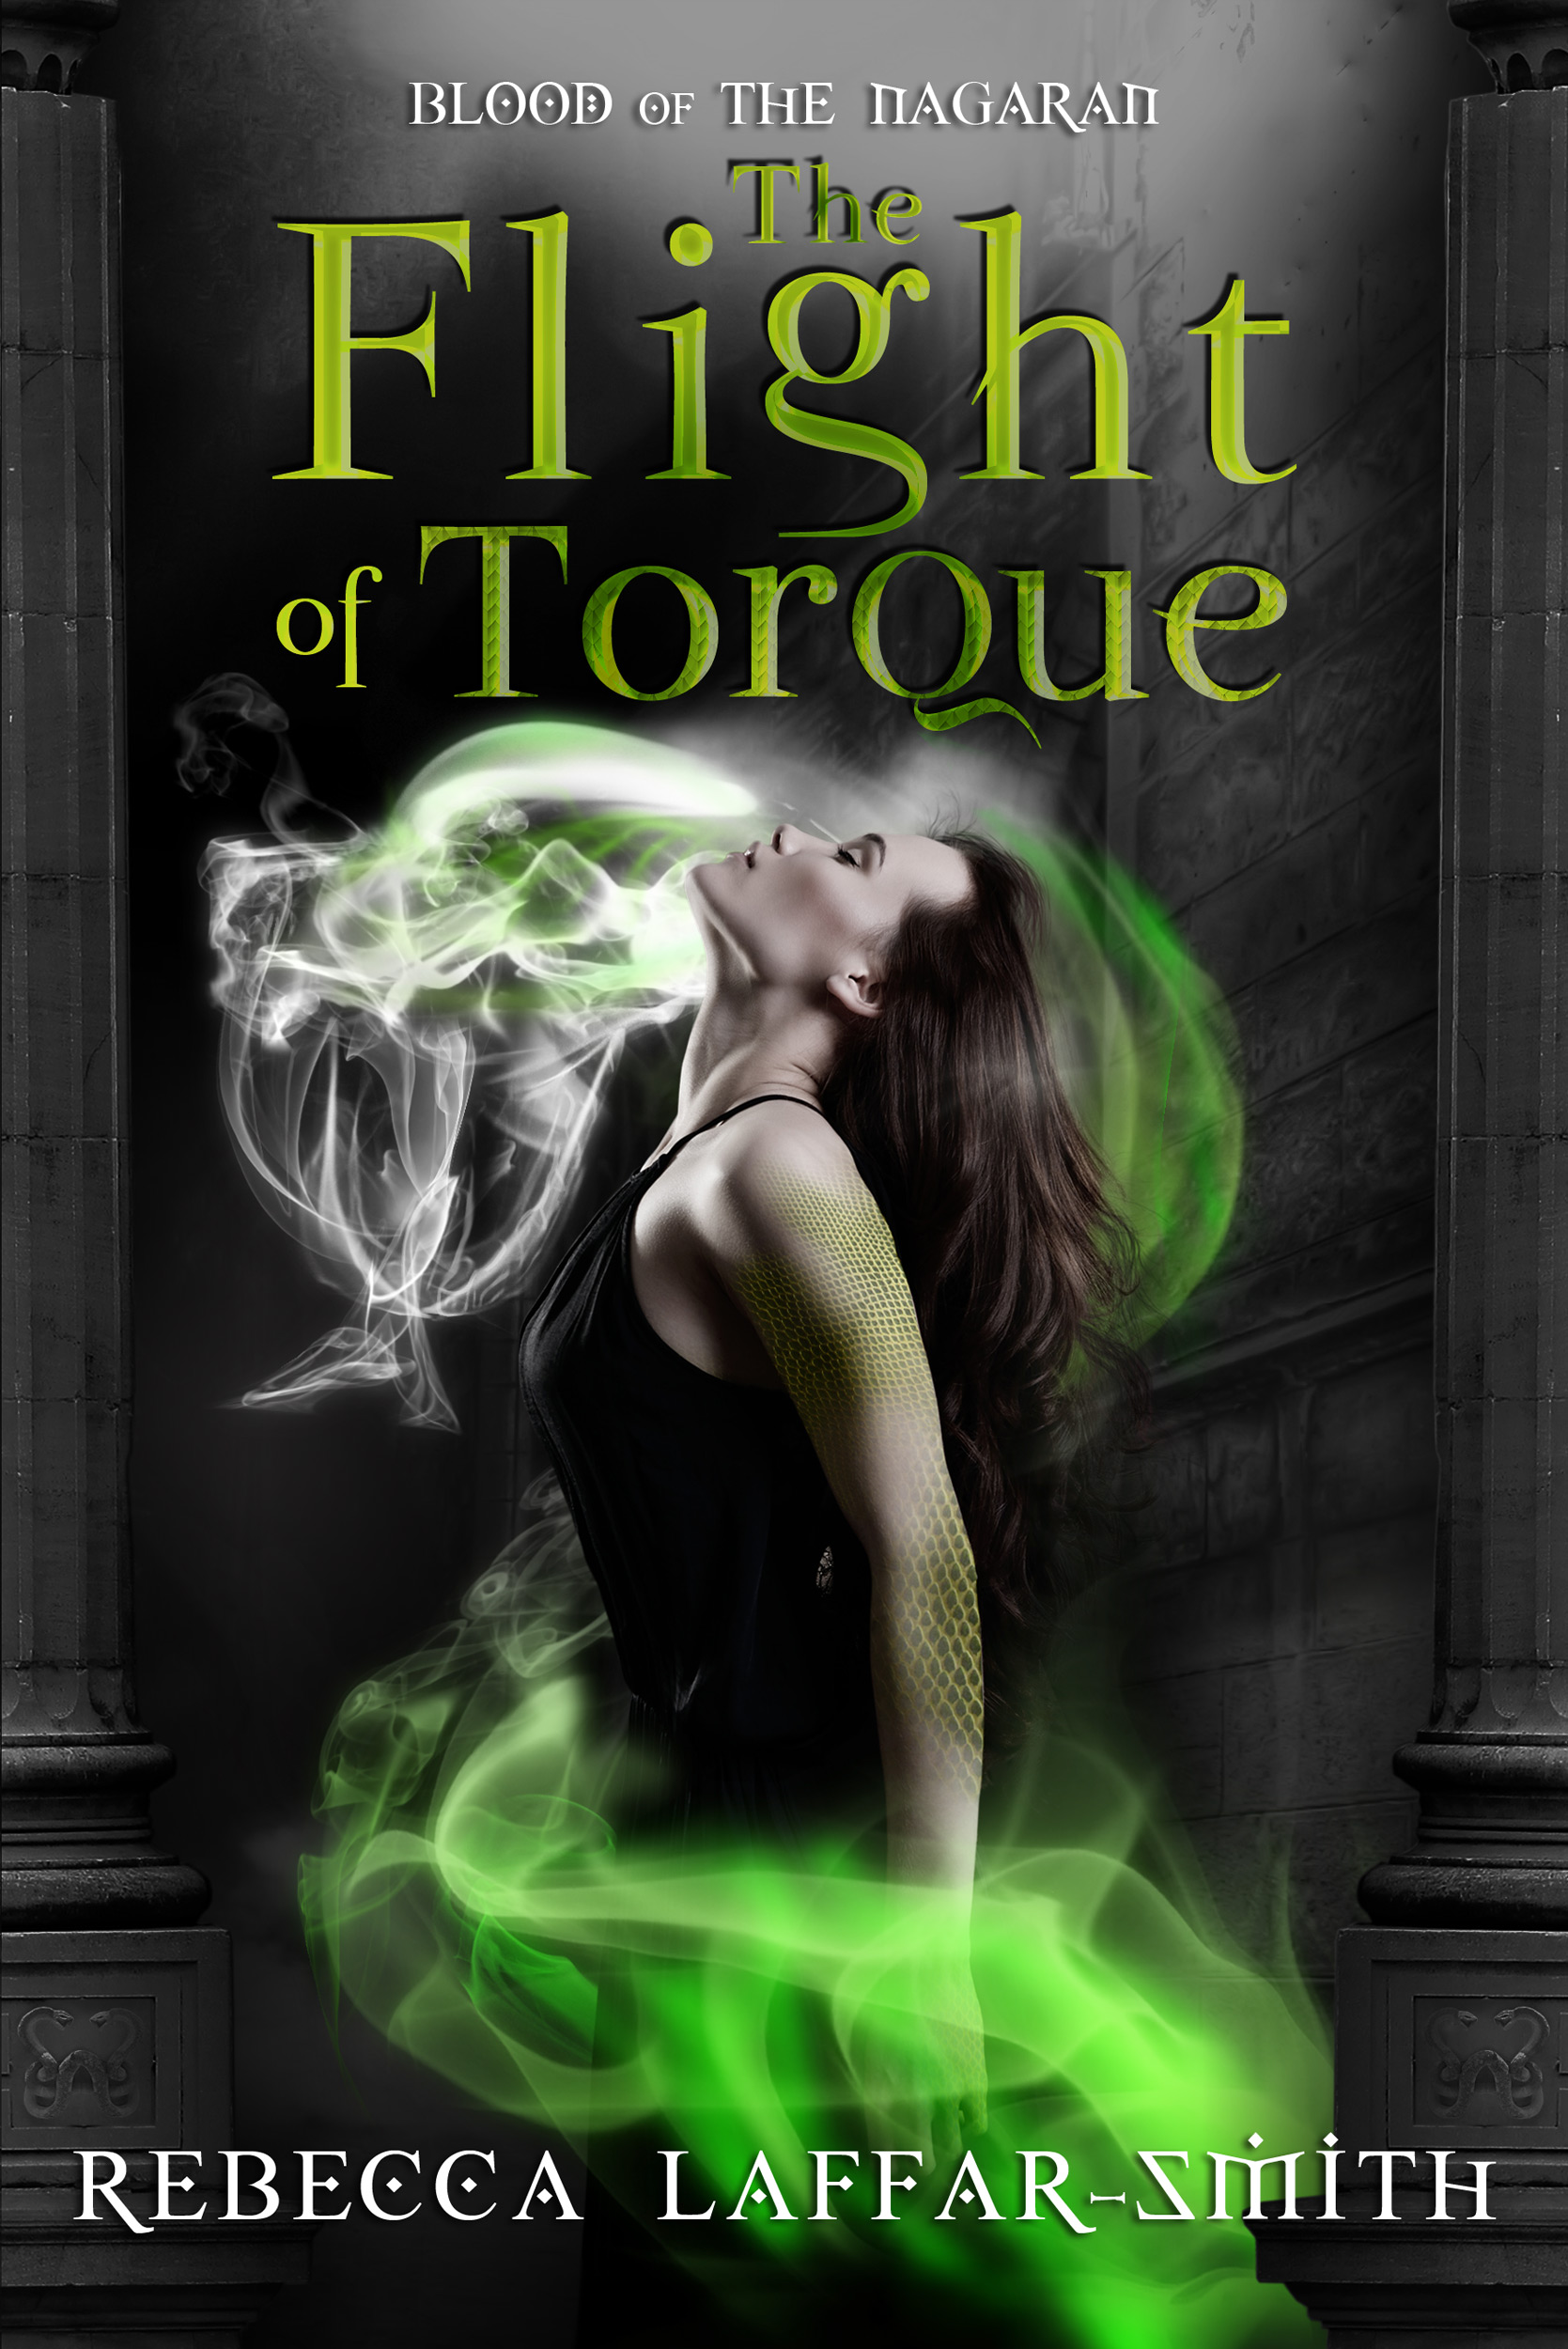 The Flight of Torque by Rebecca Laffar-Smith